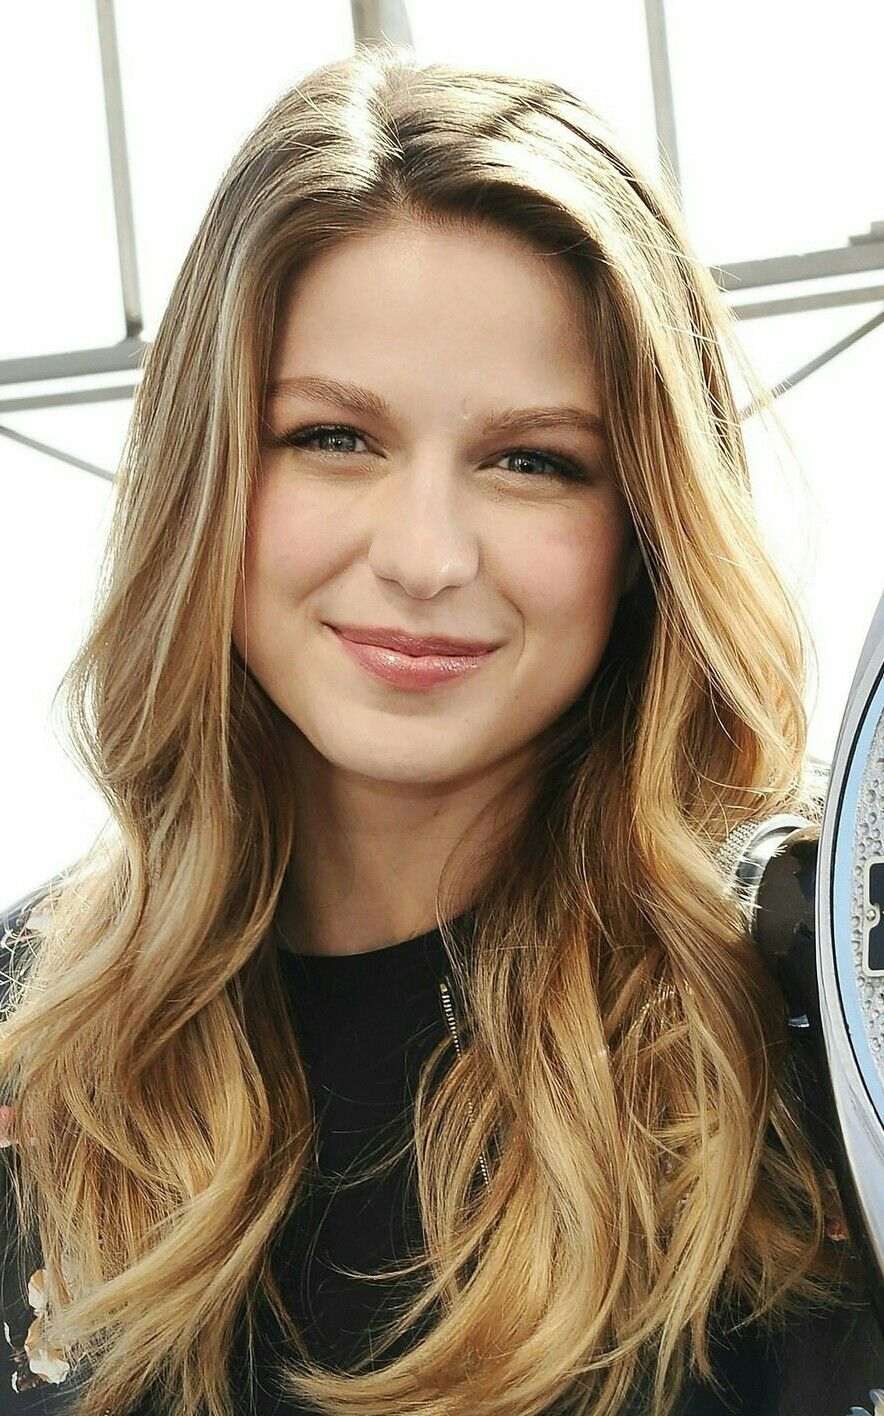 Love That Look She Is Just Way Too Cute Melissa Benoist Hot Melissa Benoist Melissa Supergirl